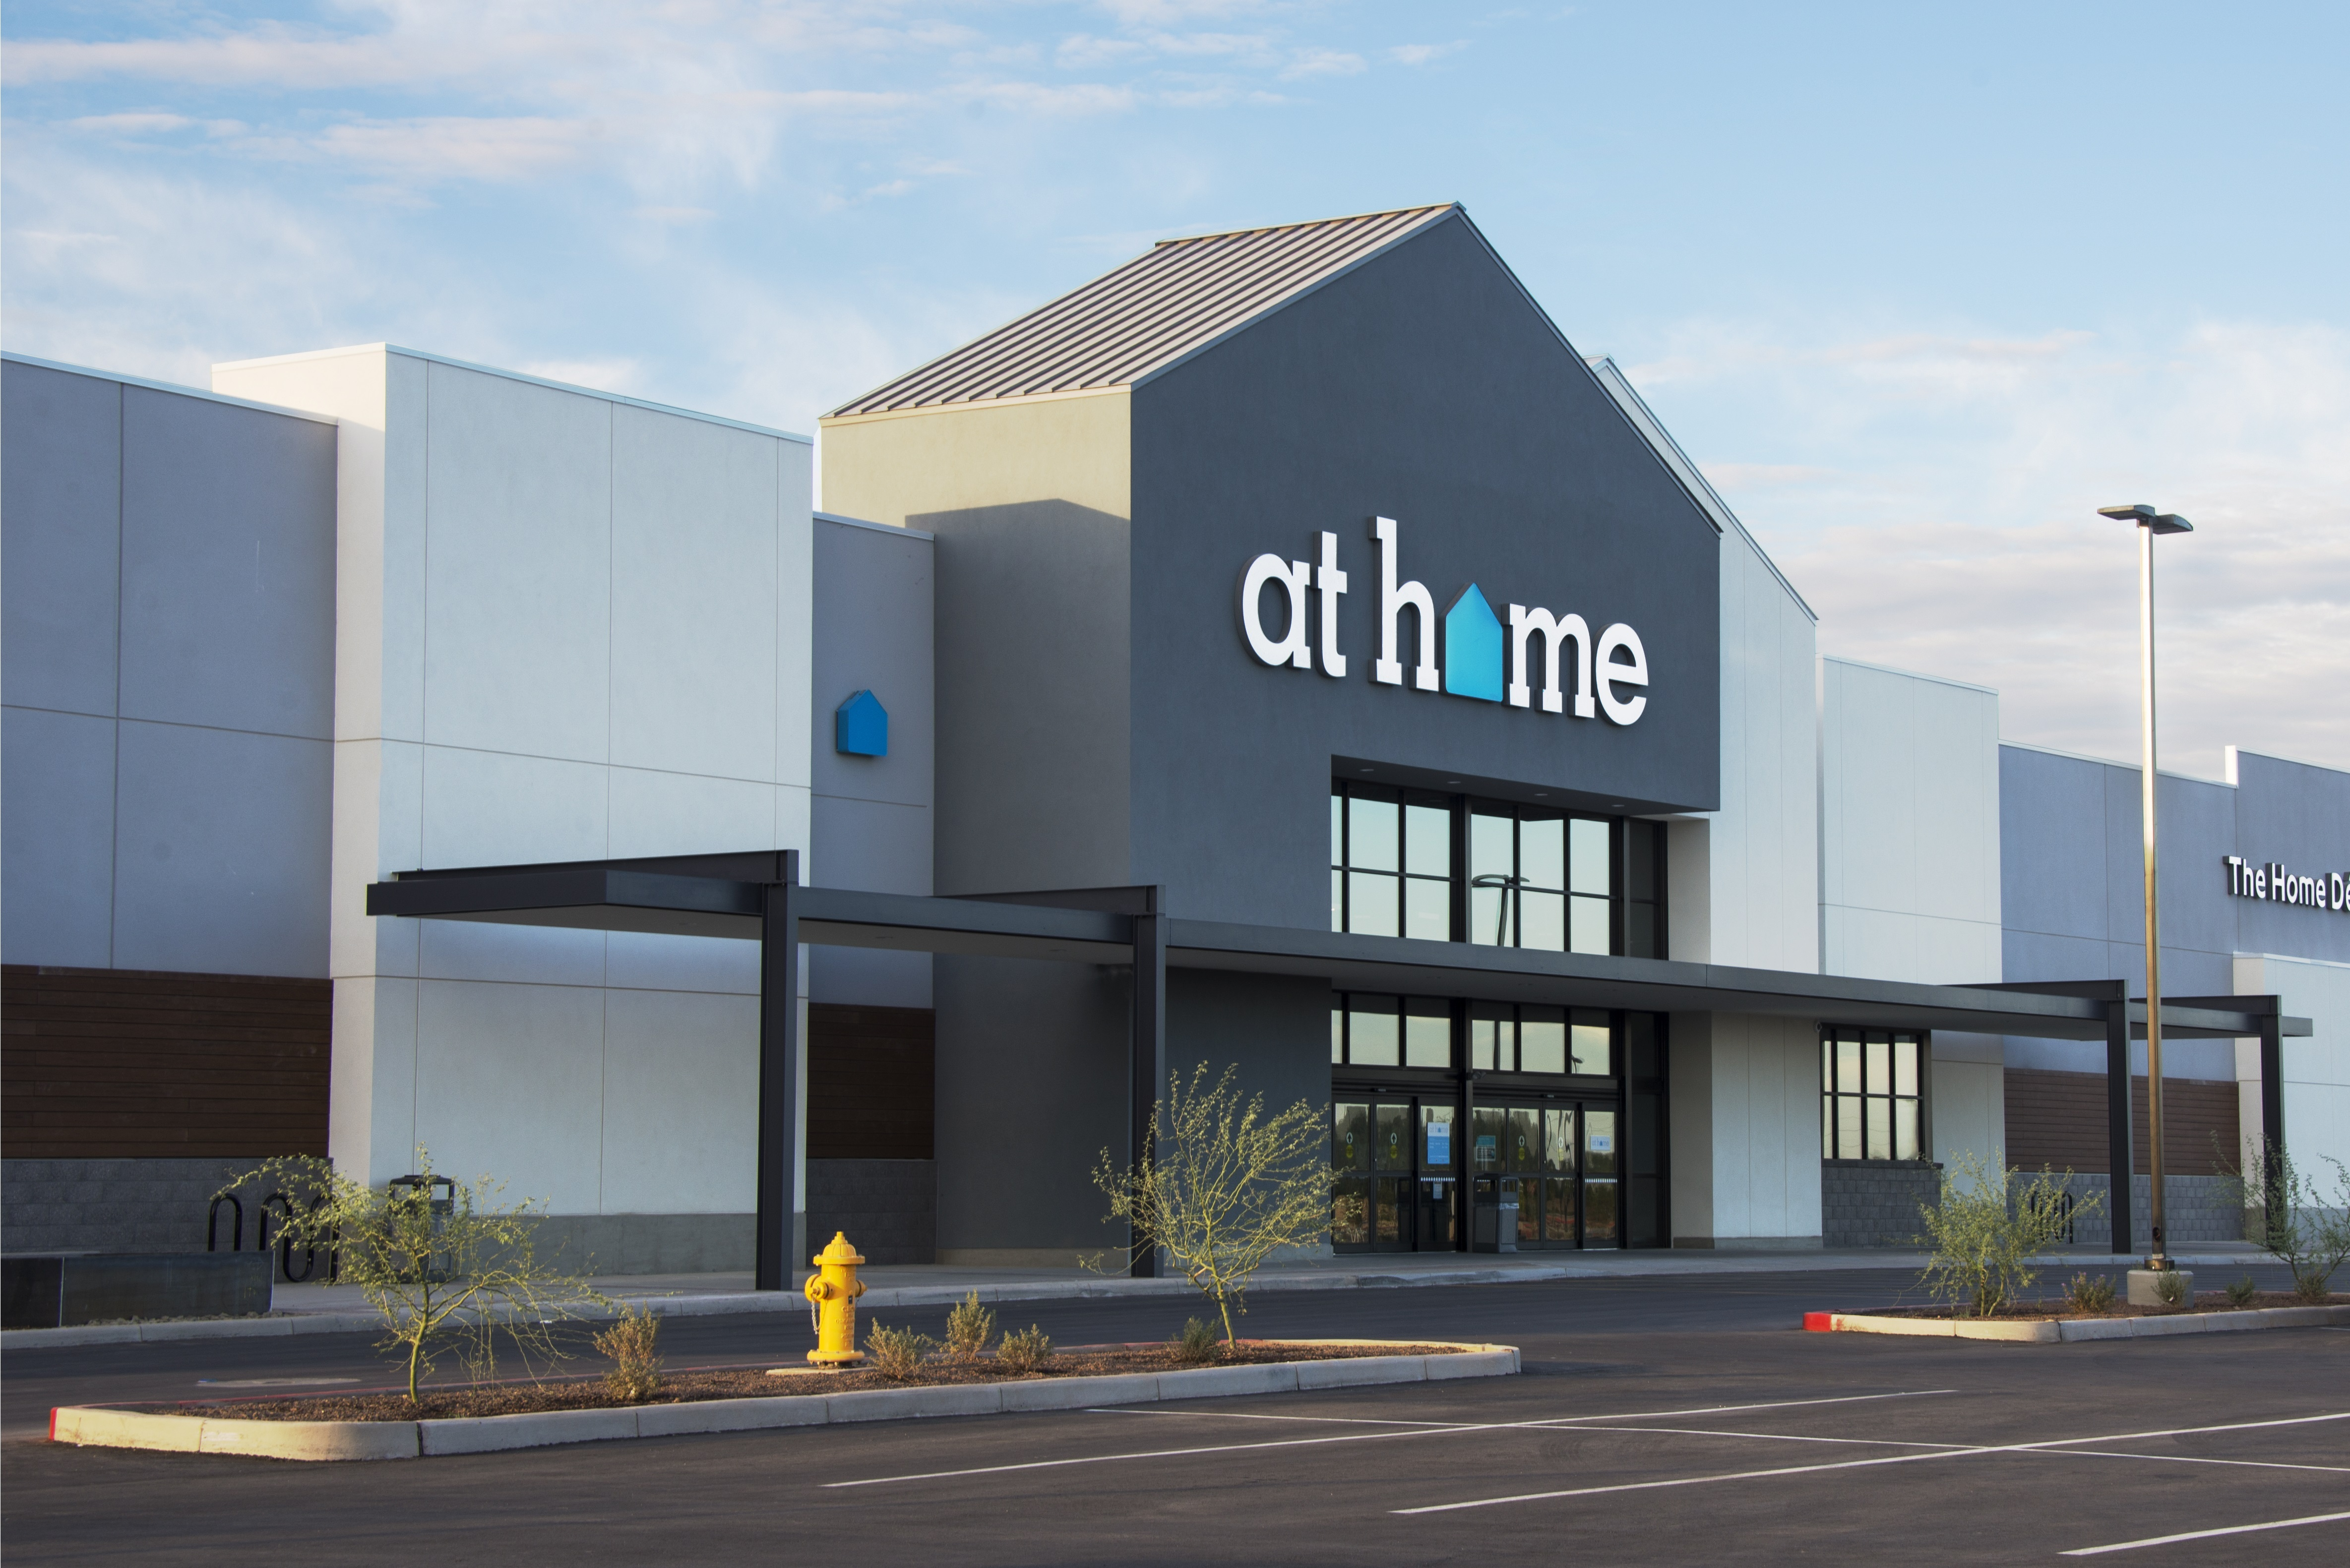 At Home Opens Three New Home Decor Superstores In August Expanding Its Footprint Business Wire